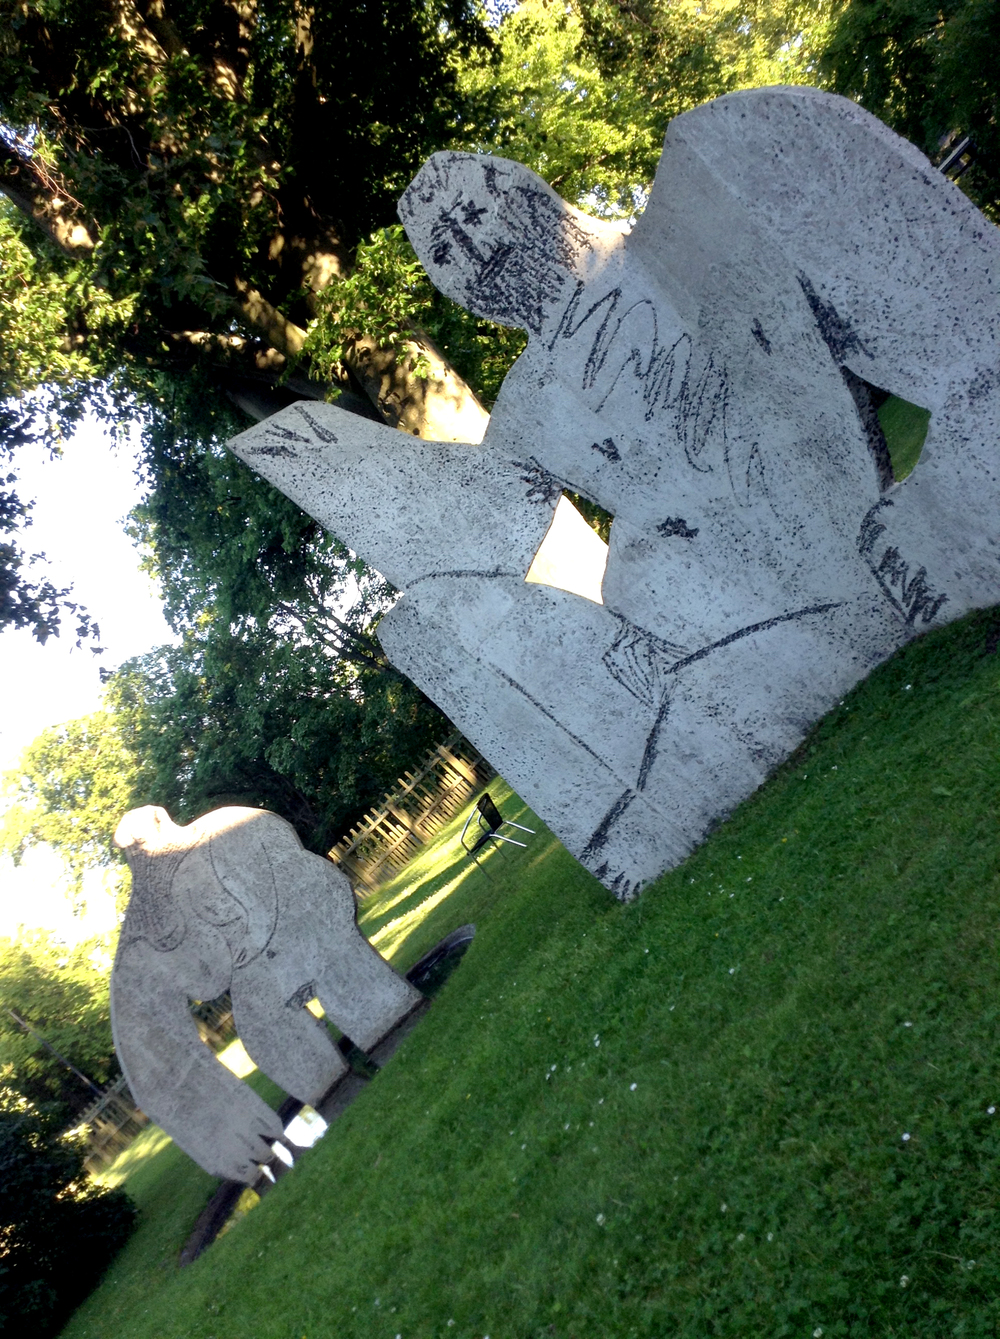 Nothing like a picnic with a bunch of massive concrete Picasso lawn nudes.